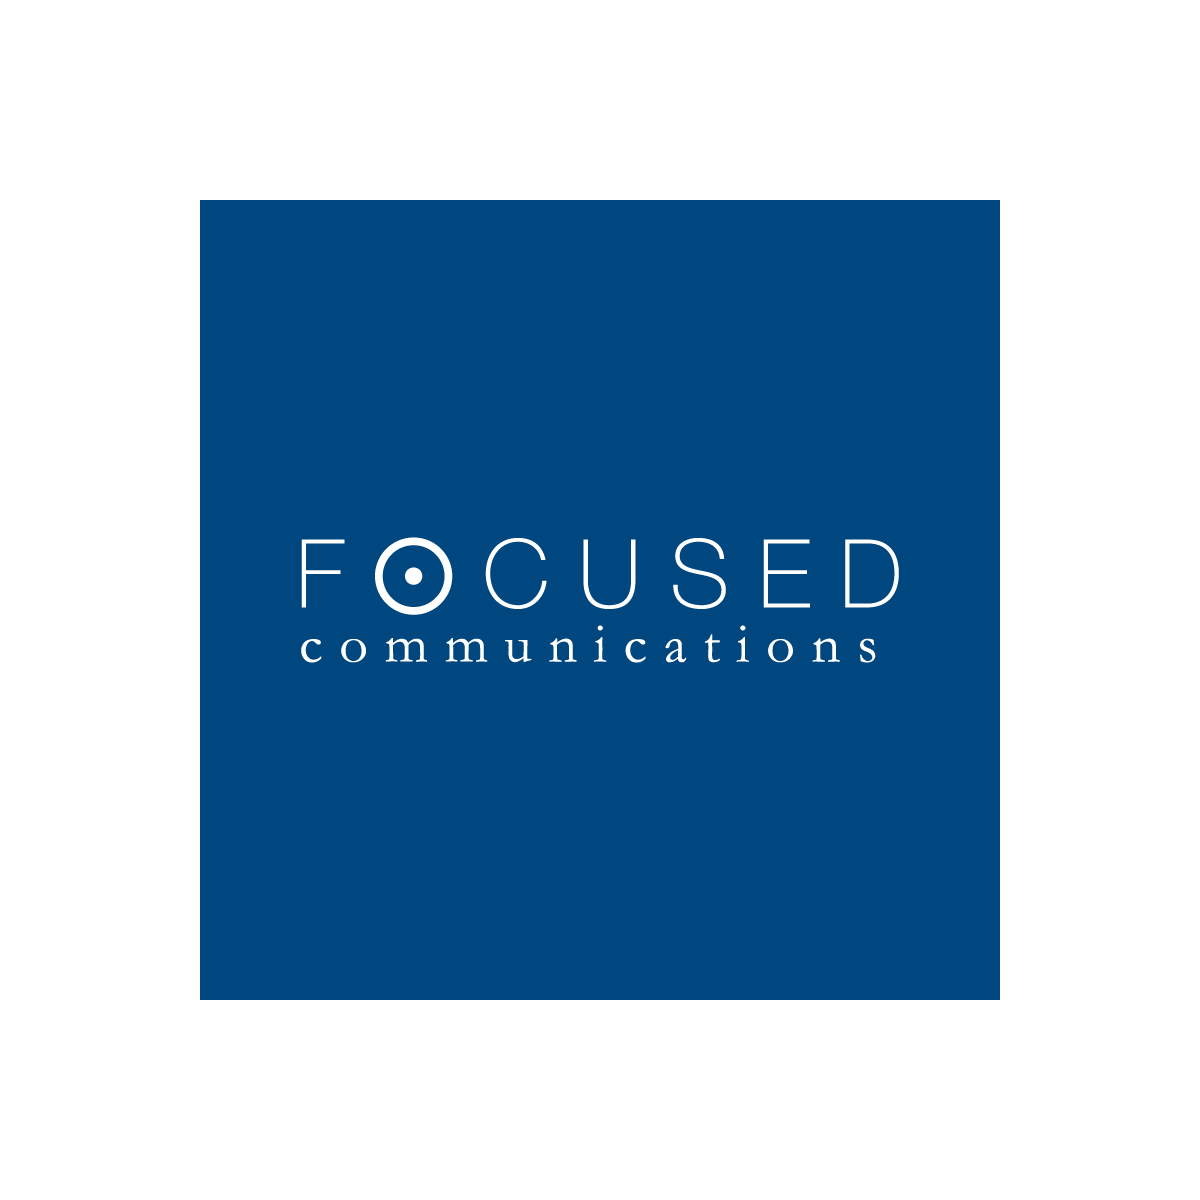 focused communications logo